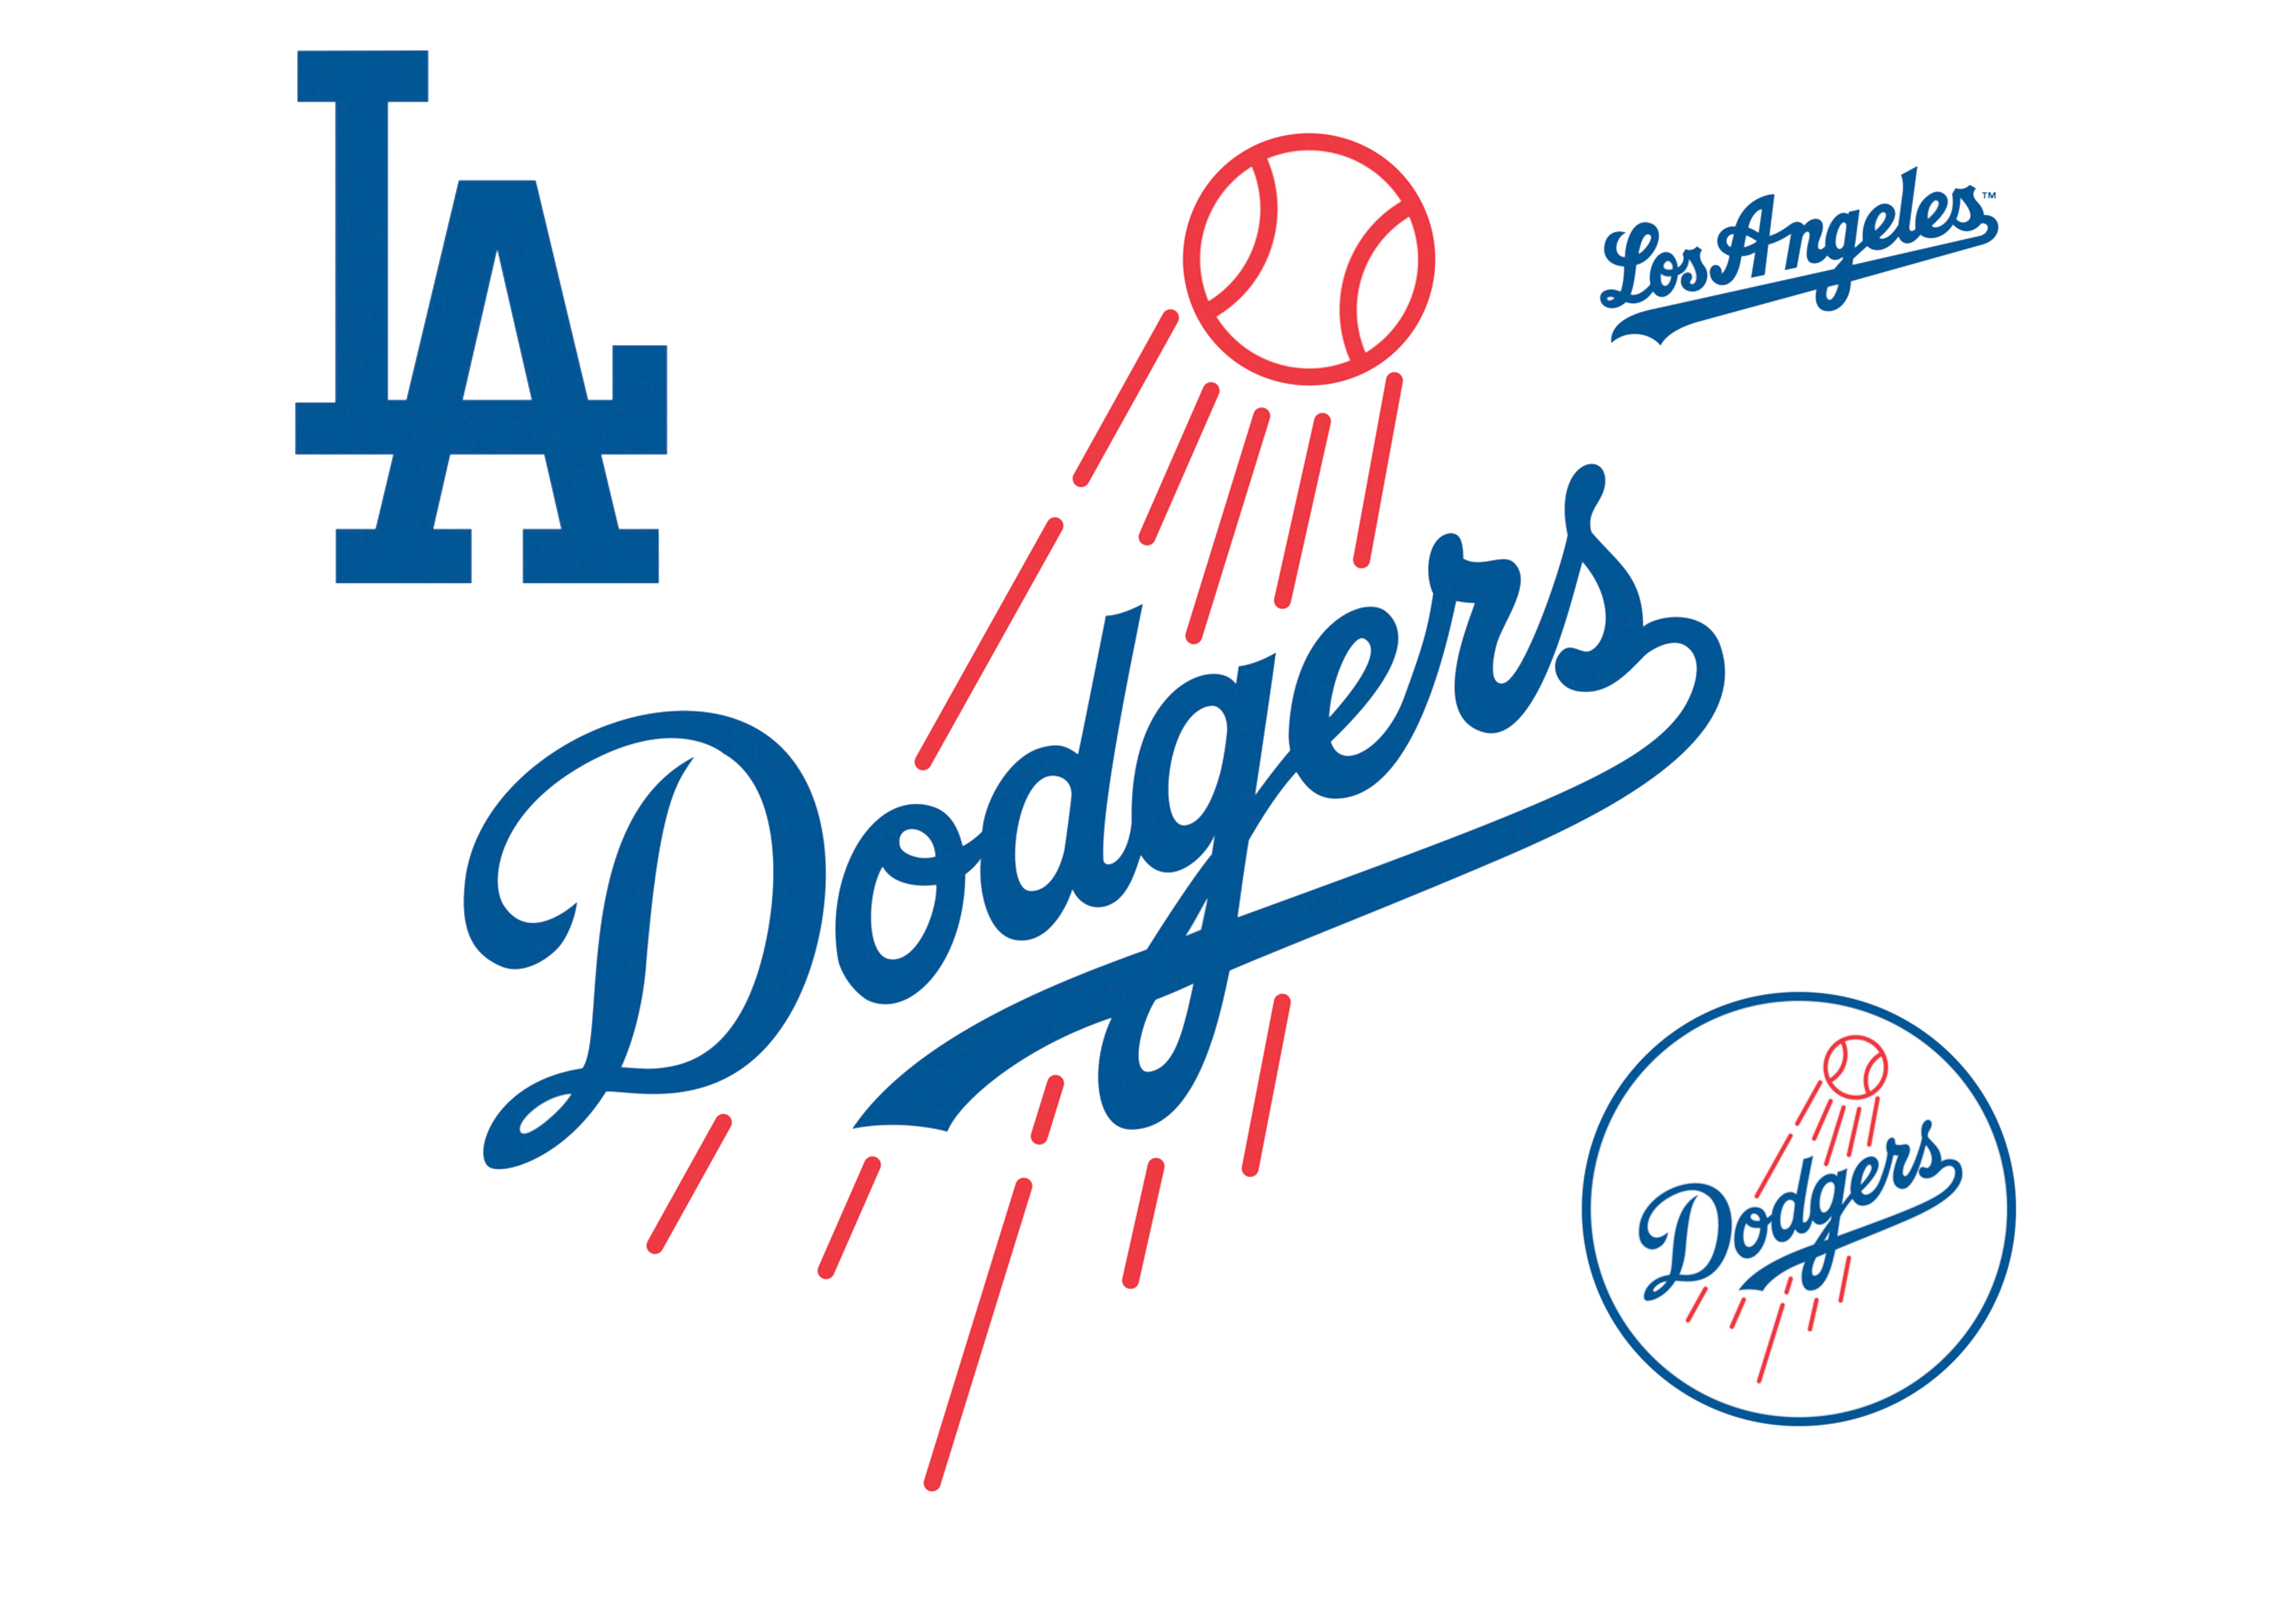 All Dodgers Logos PNG Image.